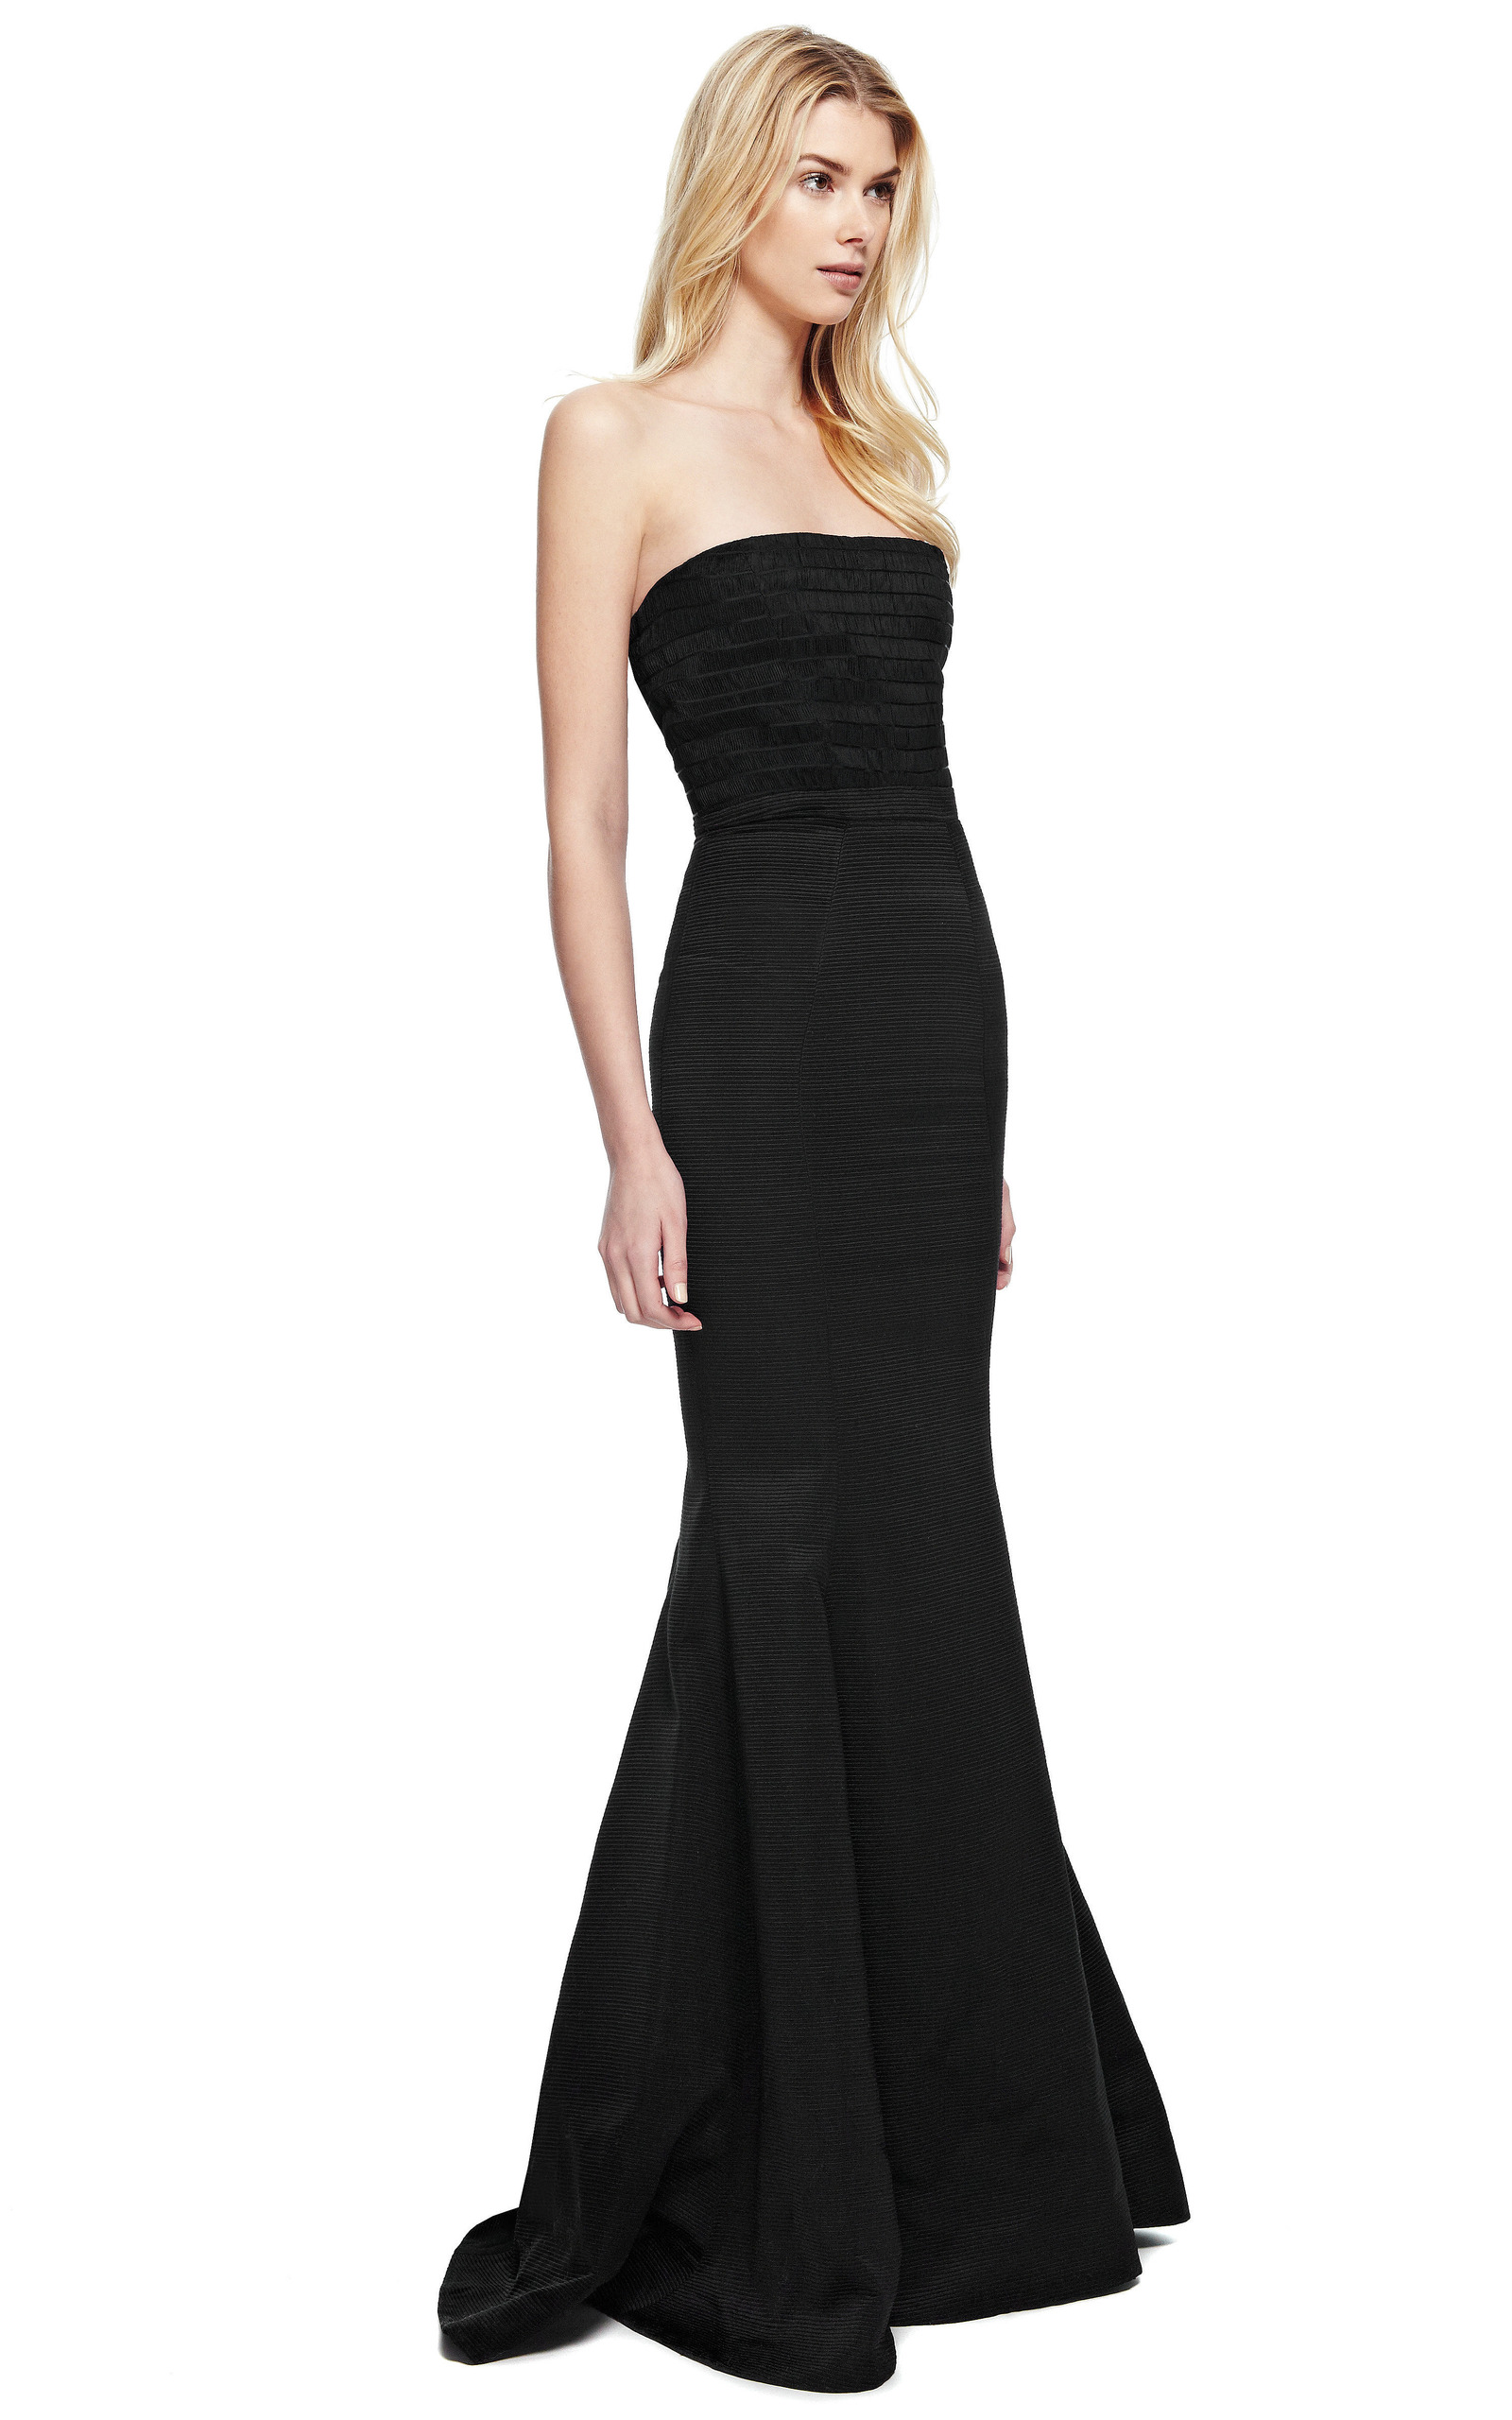 1312d4f976f8 Katie ErmilioCombo Fishtail Evening Gown. CLOSE. Loading. Loading